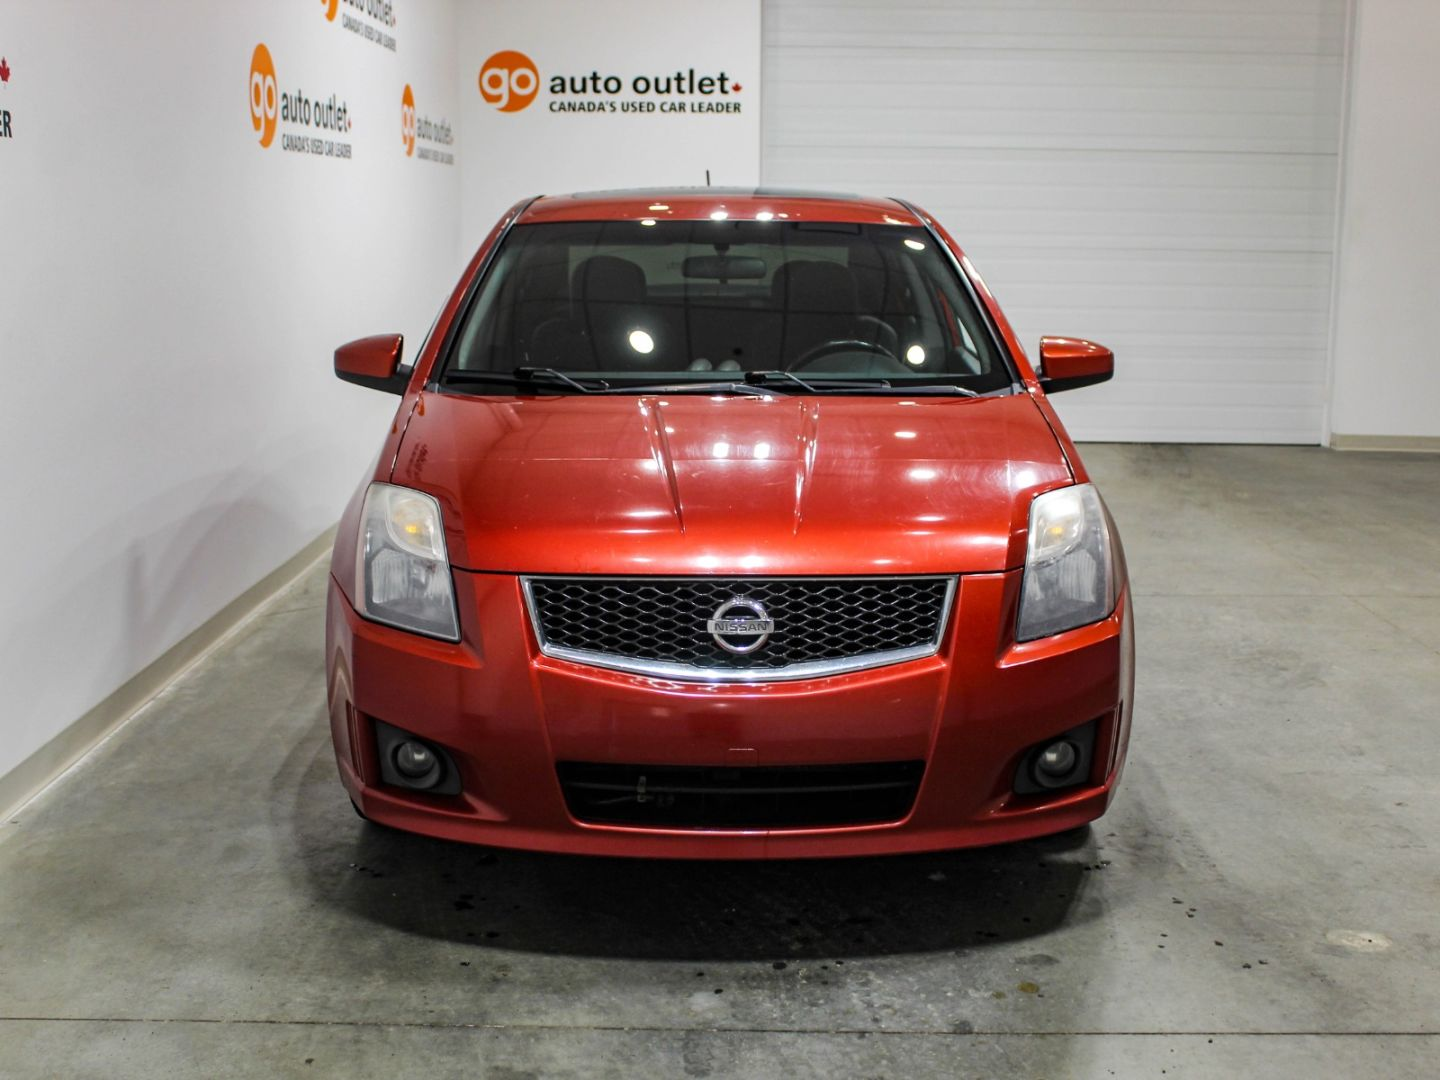 2010 Nissan Sentra SE-R Spec V for sale in ,